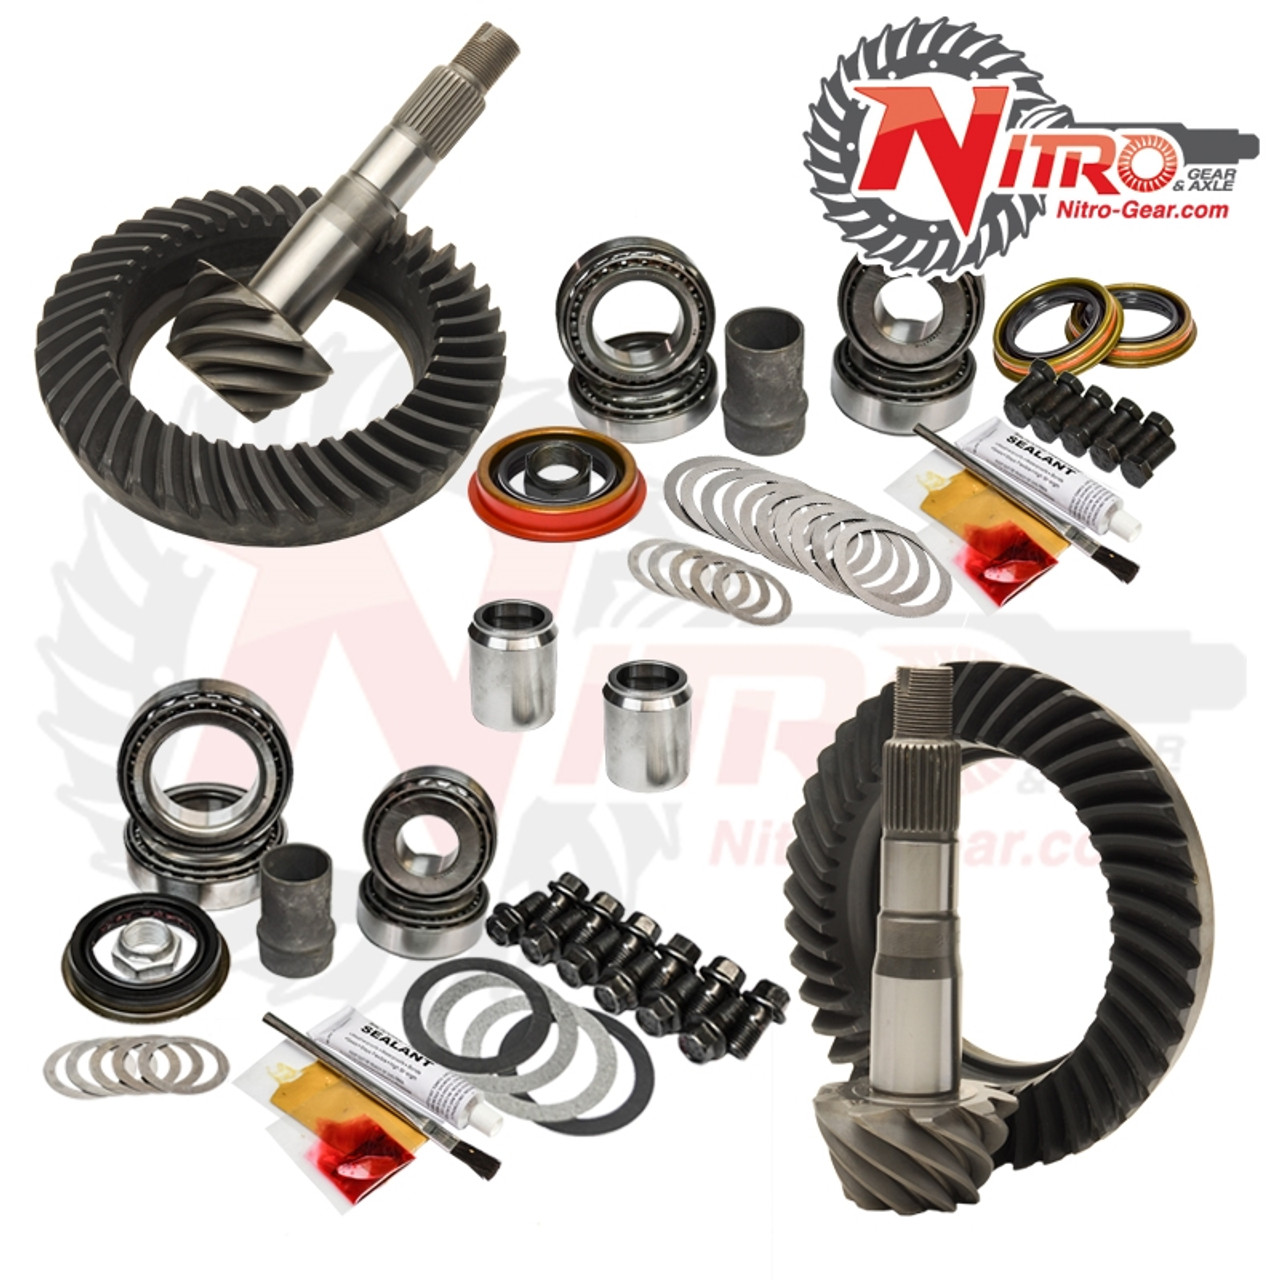 03-09 Toyota 4Runner FJ Hilux Tacoma E-Lock 4.30 Ratio Gear Package Kit Nitro Gear and Axle